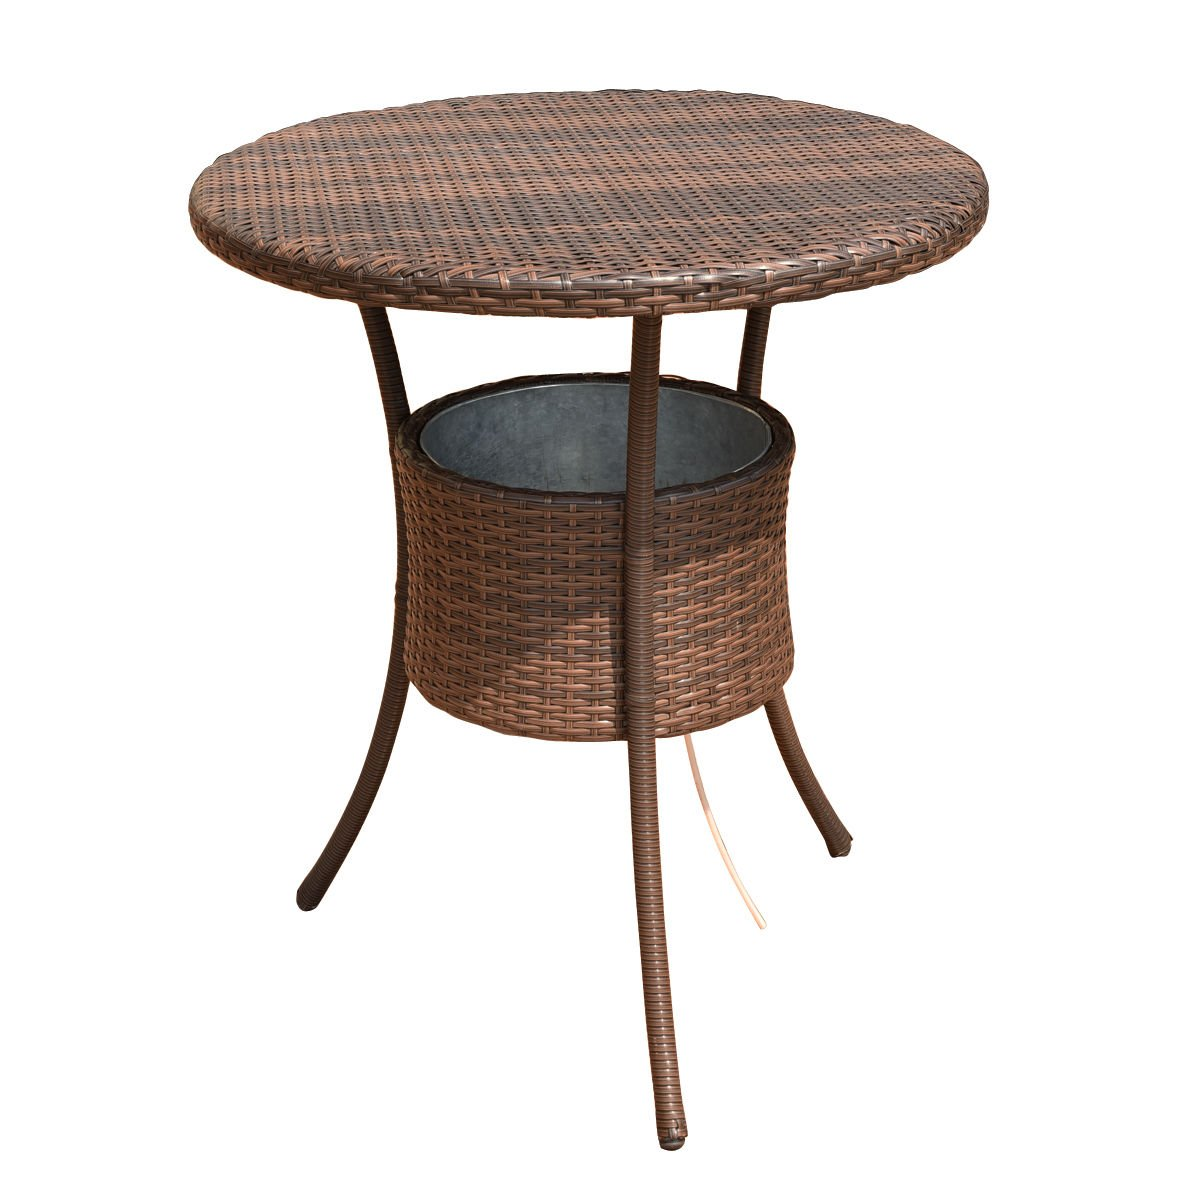 COSTWAY 31.5 7.9-Gal Cool Bar Rattan Style Outdoor Patio Party Deck Pool Cooler Table with Ice Bucket, Brown